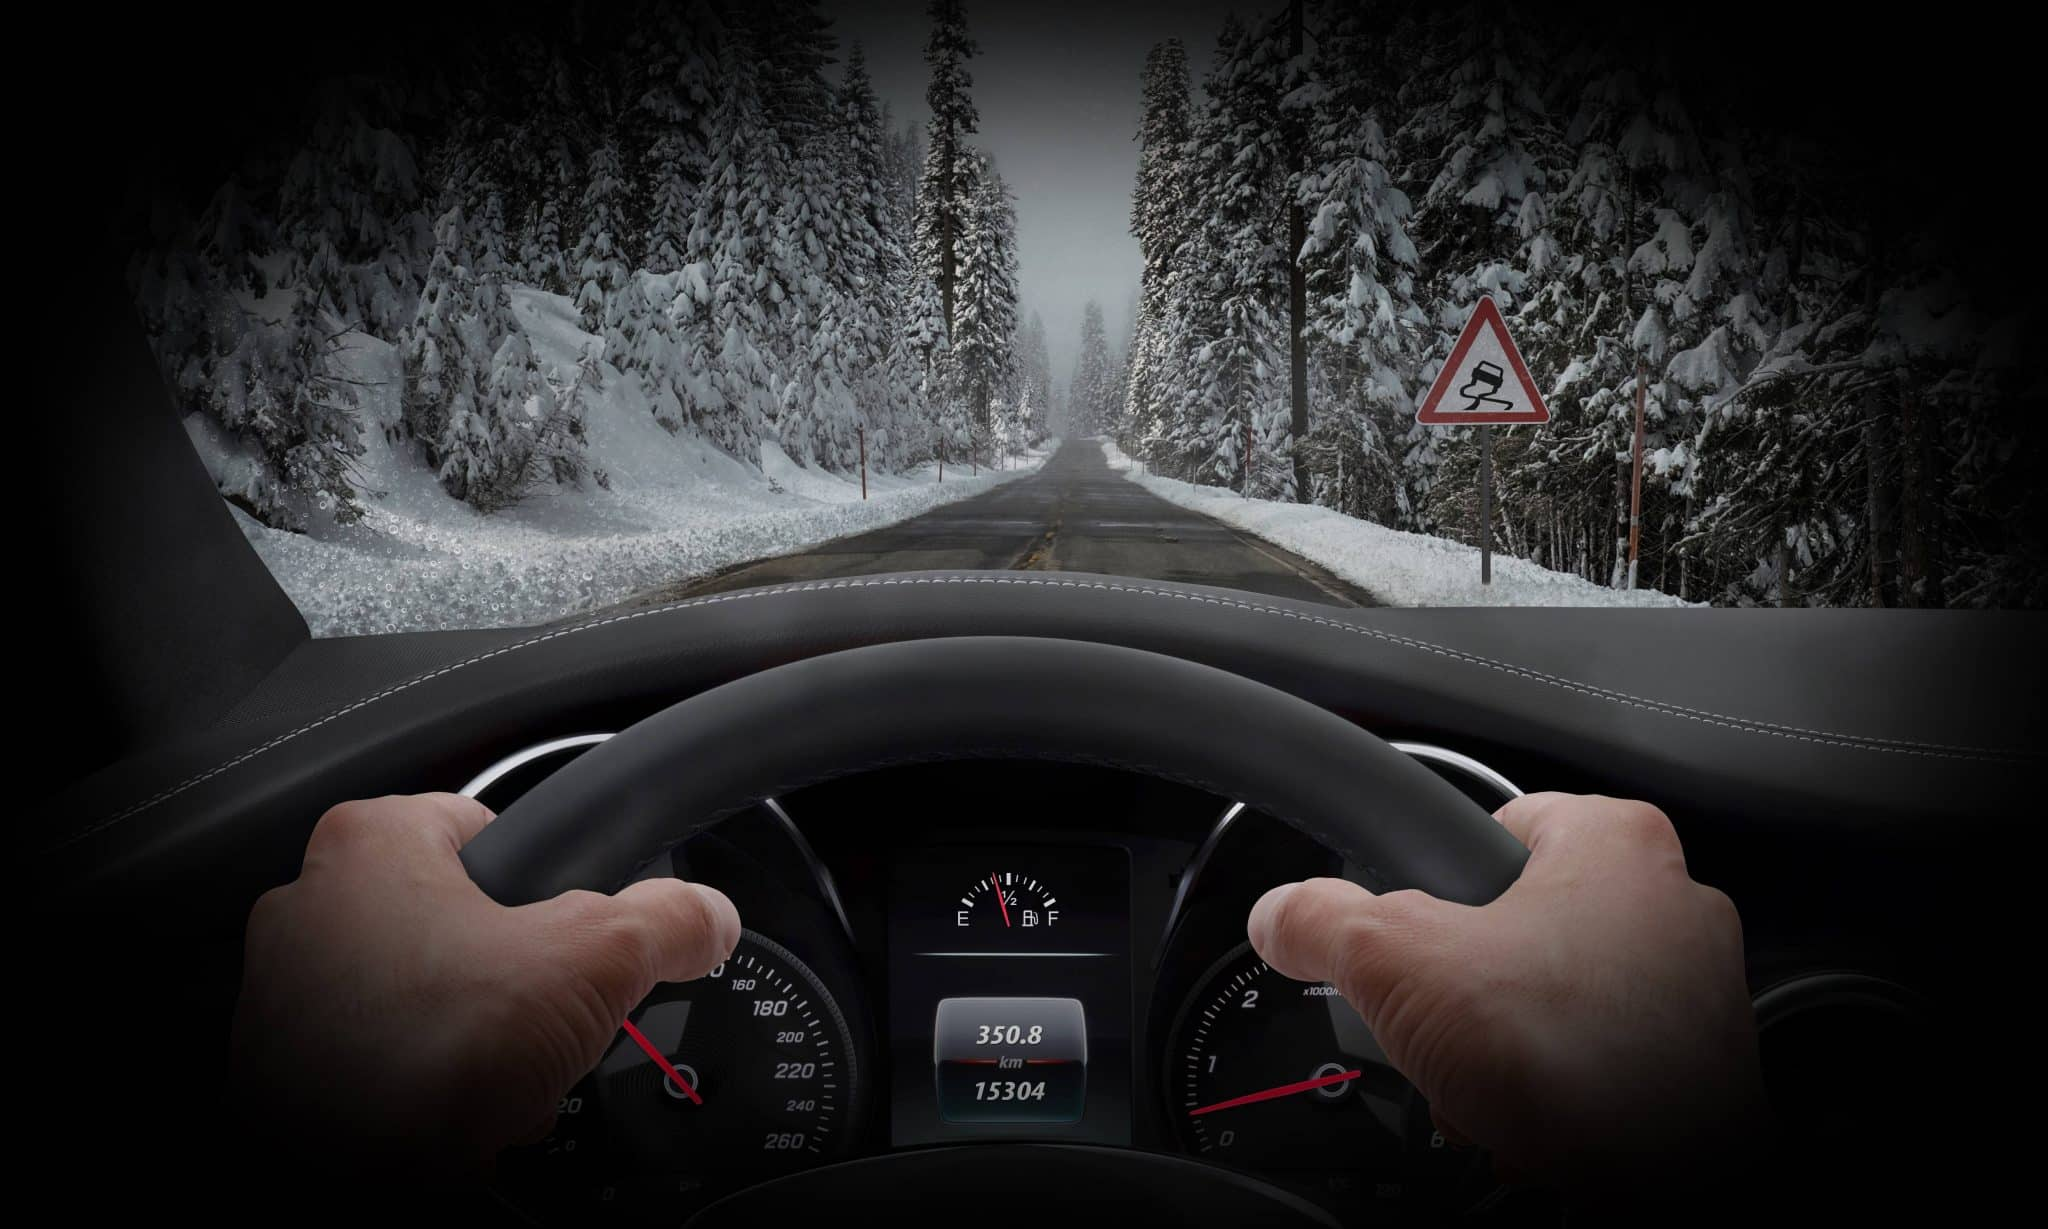 Online Marketing Without Good Analytics is Like Driving With Impaired Vision | Disruptive Advertising